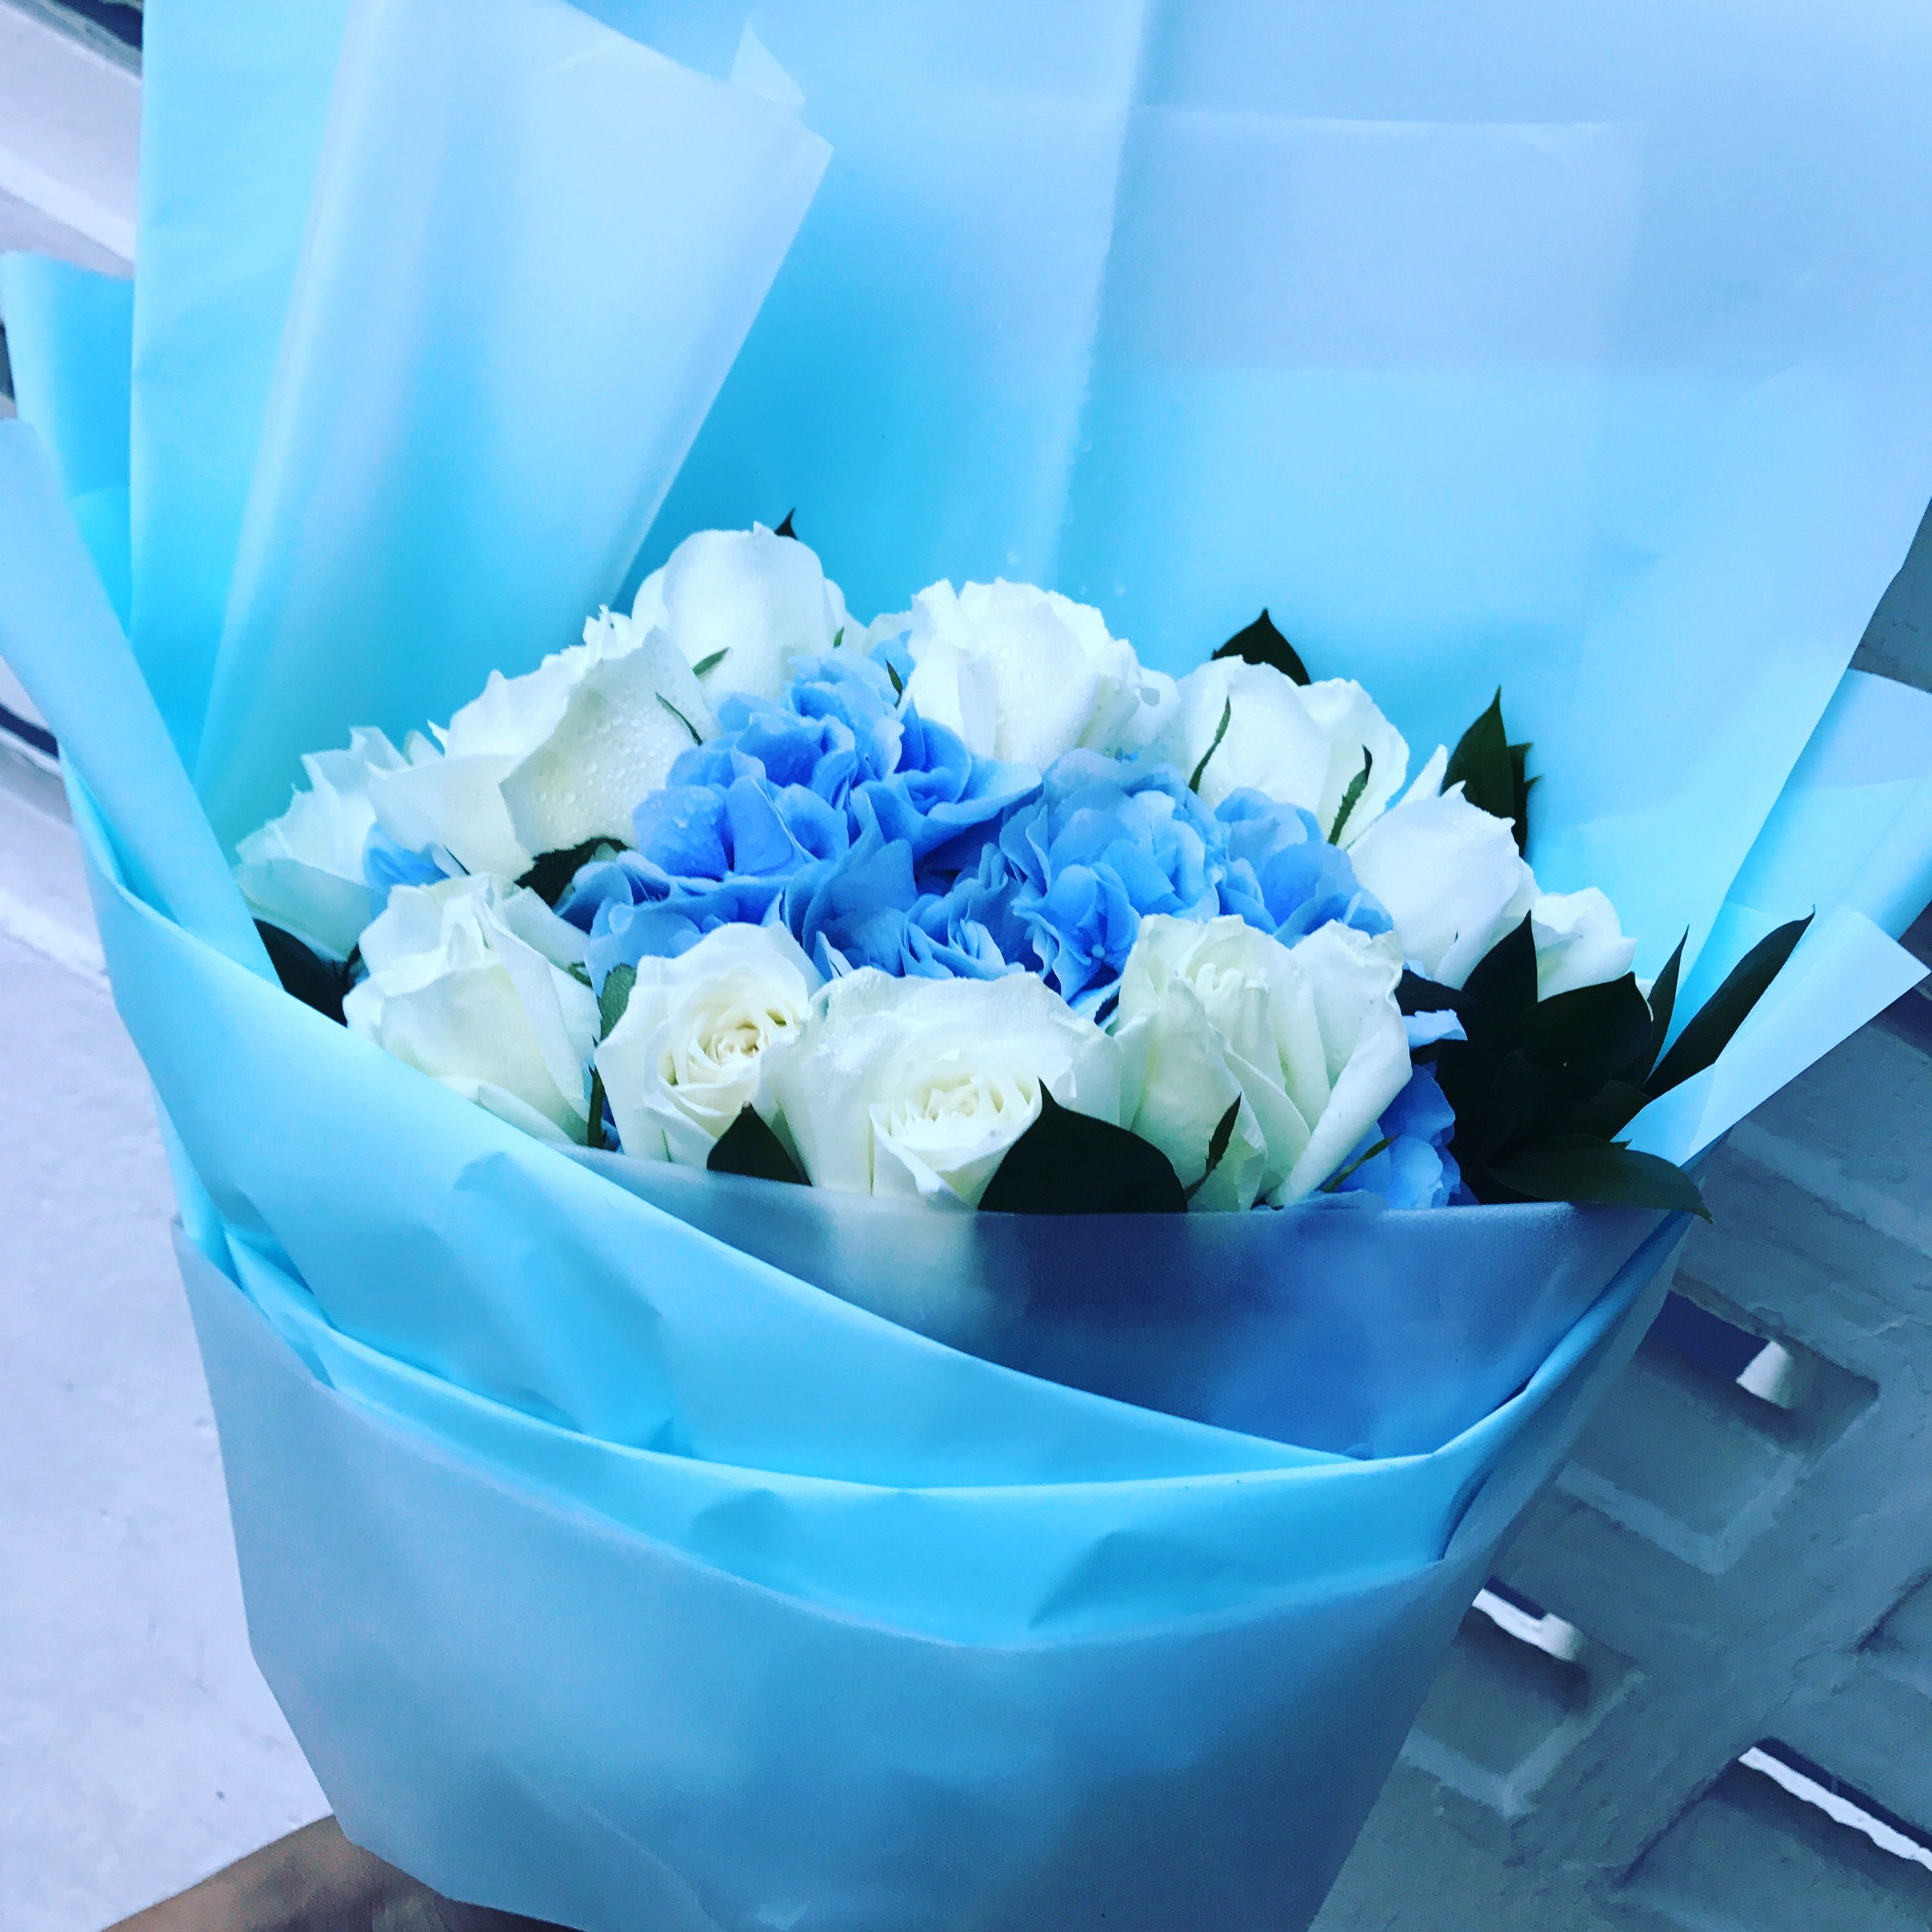 Cool 😎 blue. Flower Delivery Singapore 🇸🇬 creation.